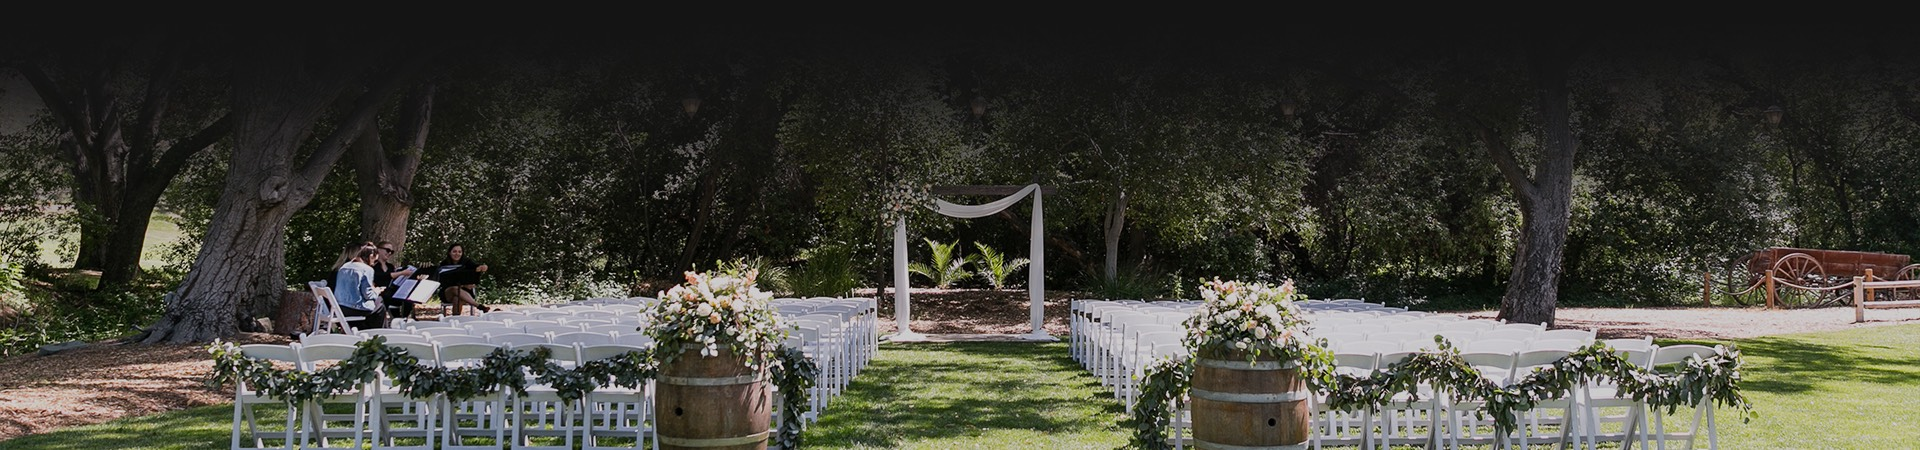 wedding ceremony with white chairs set up outside